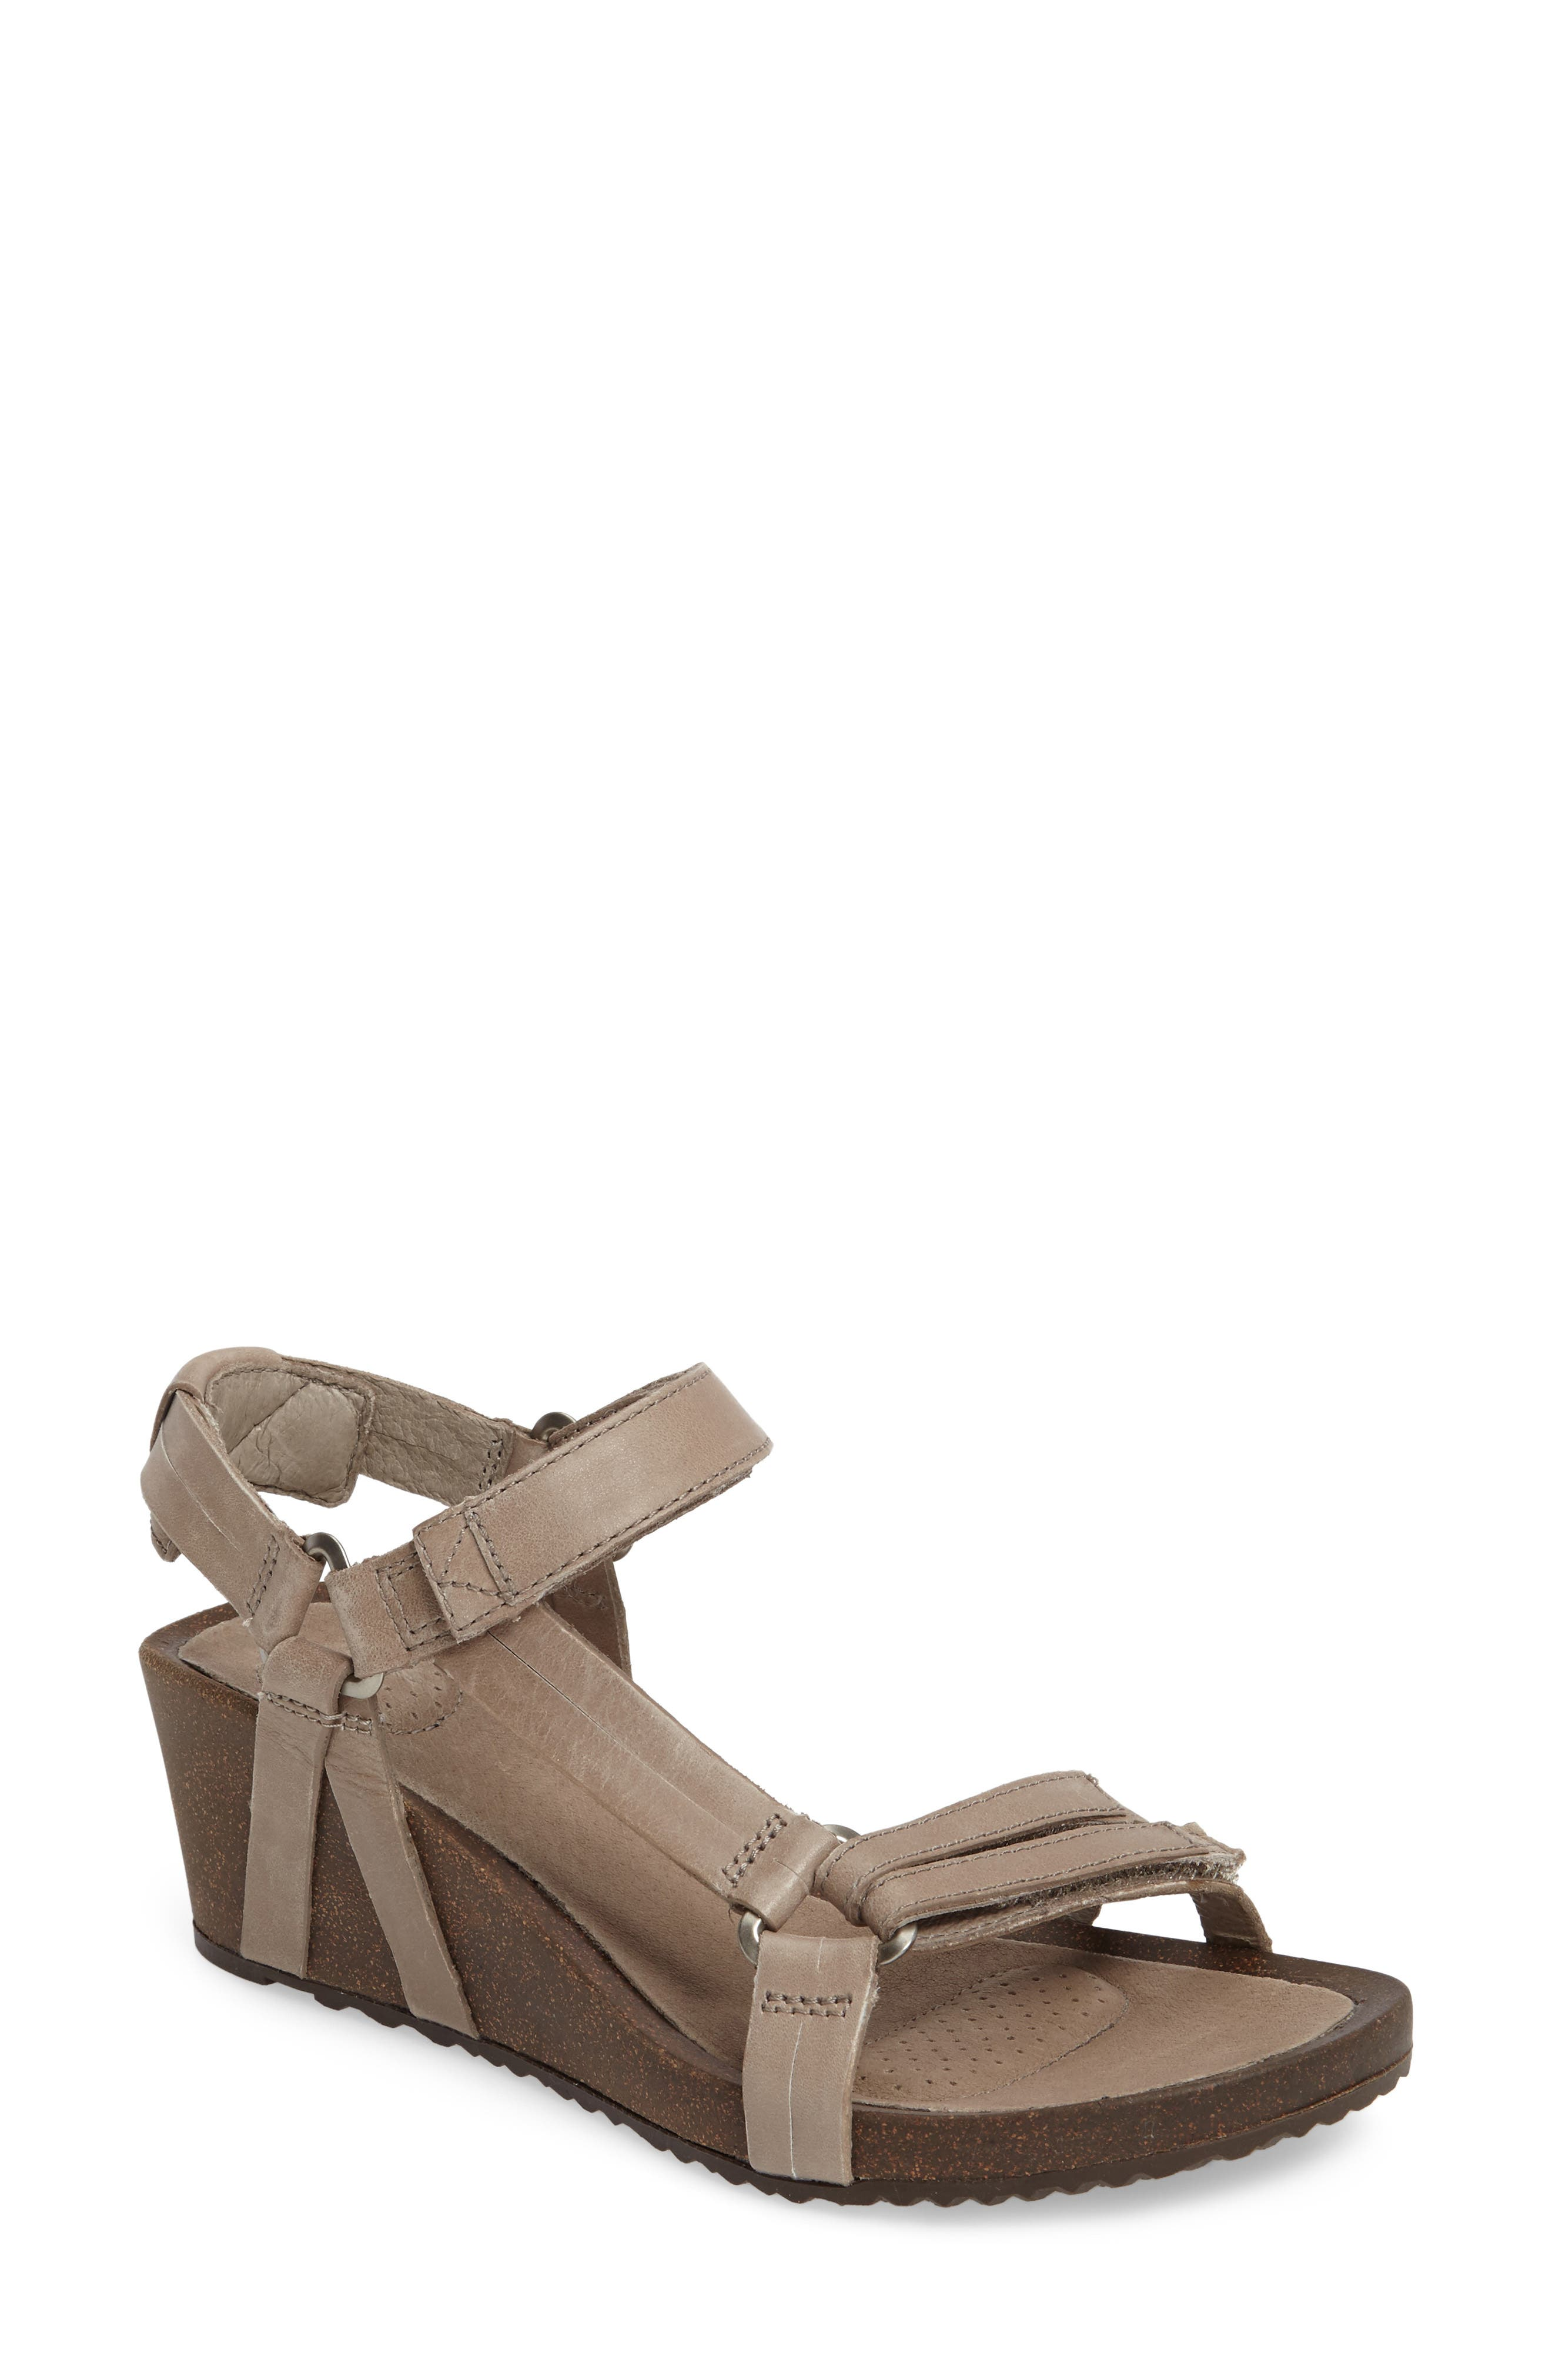 Ysidro Wedge Sandal,                         Main,                         color, Taupe Leather